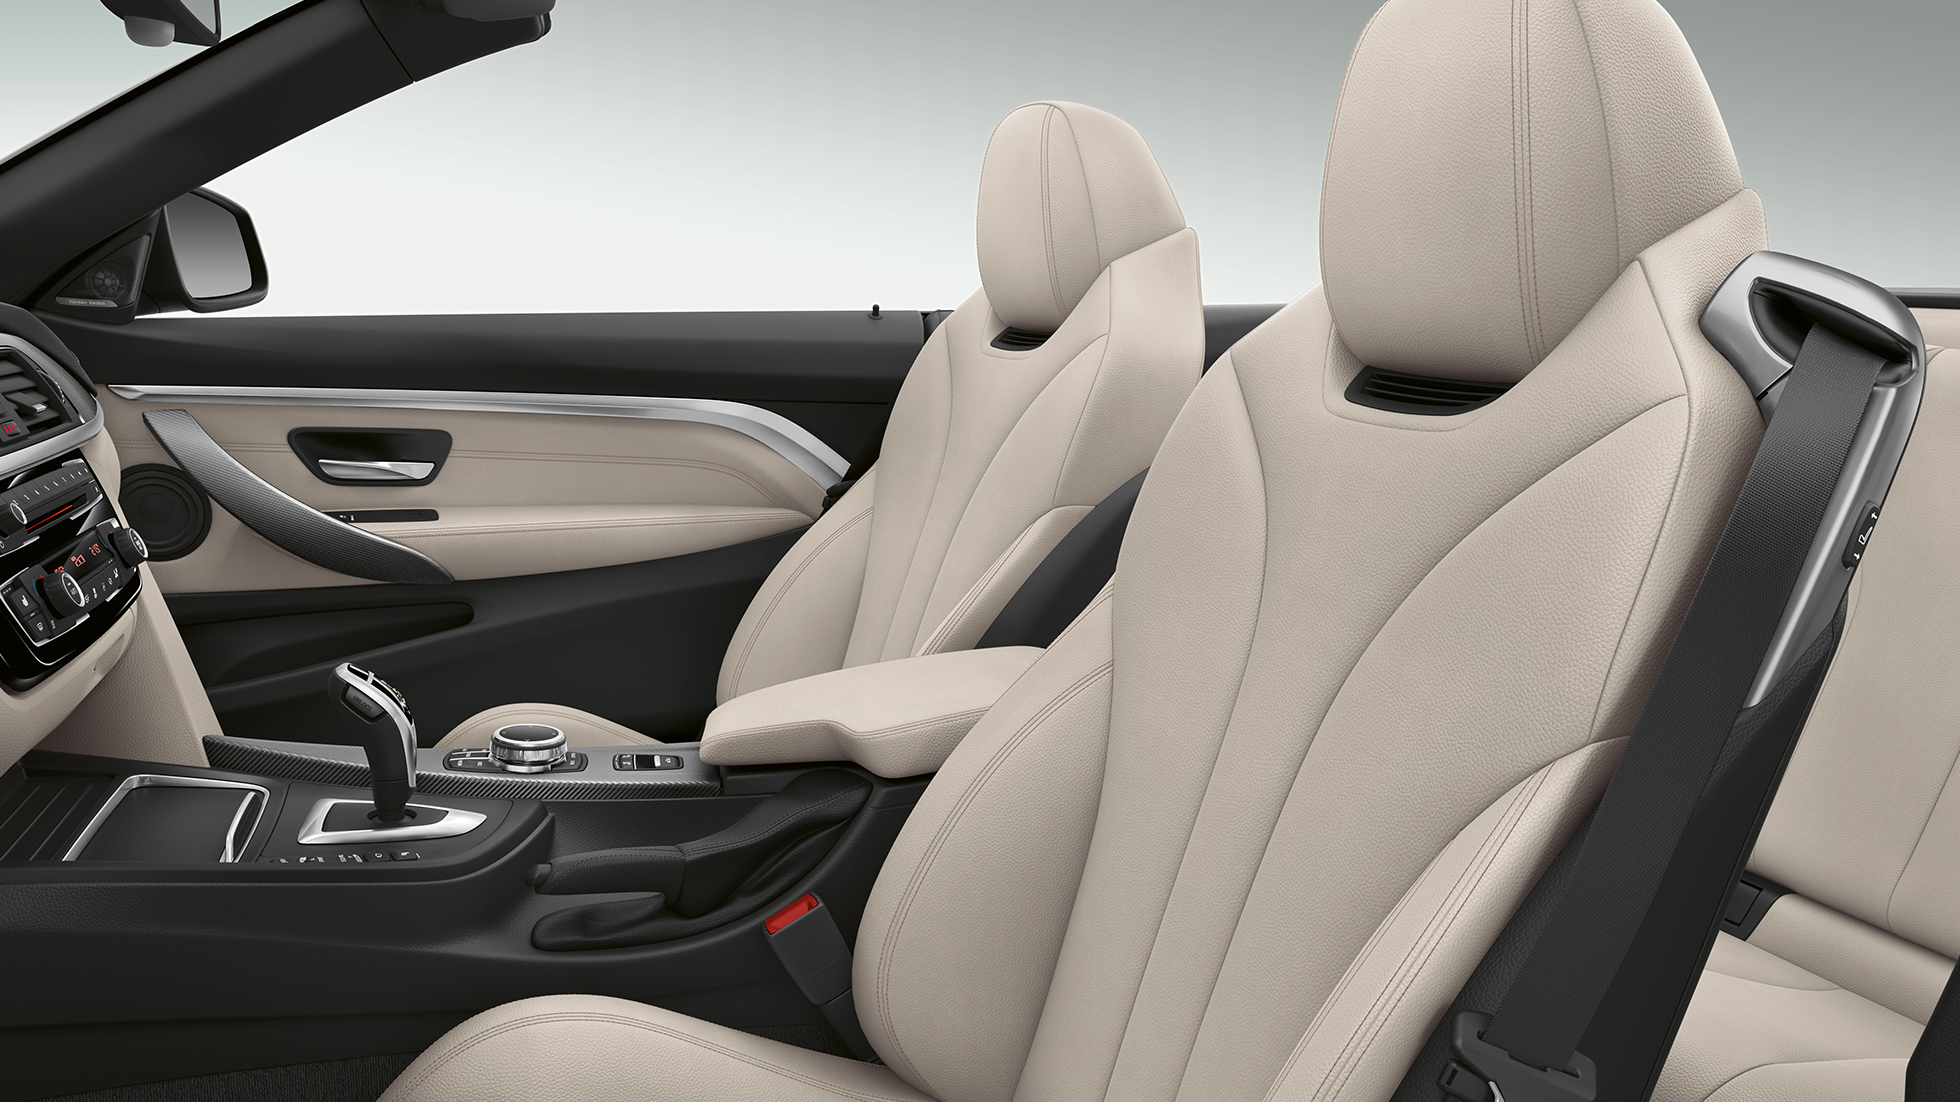 BMW 4 Series Convertible, Model Luxury Line interior